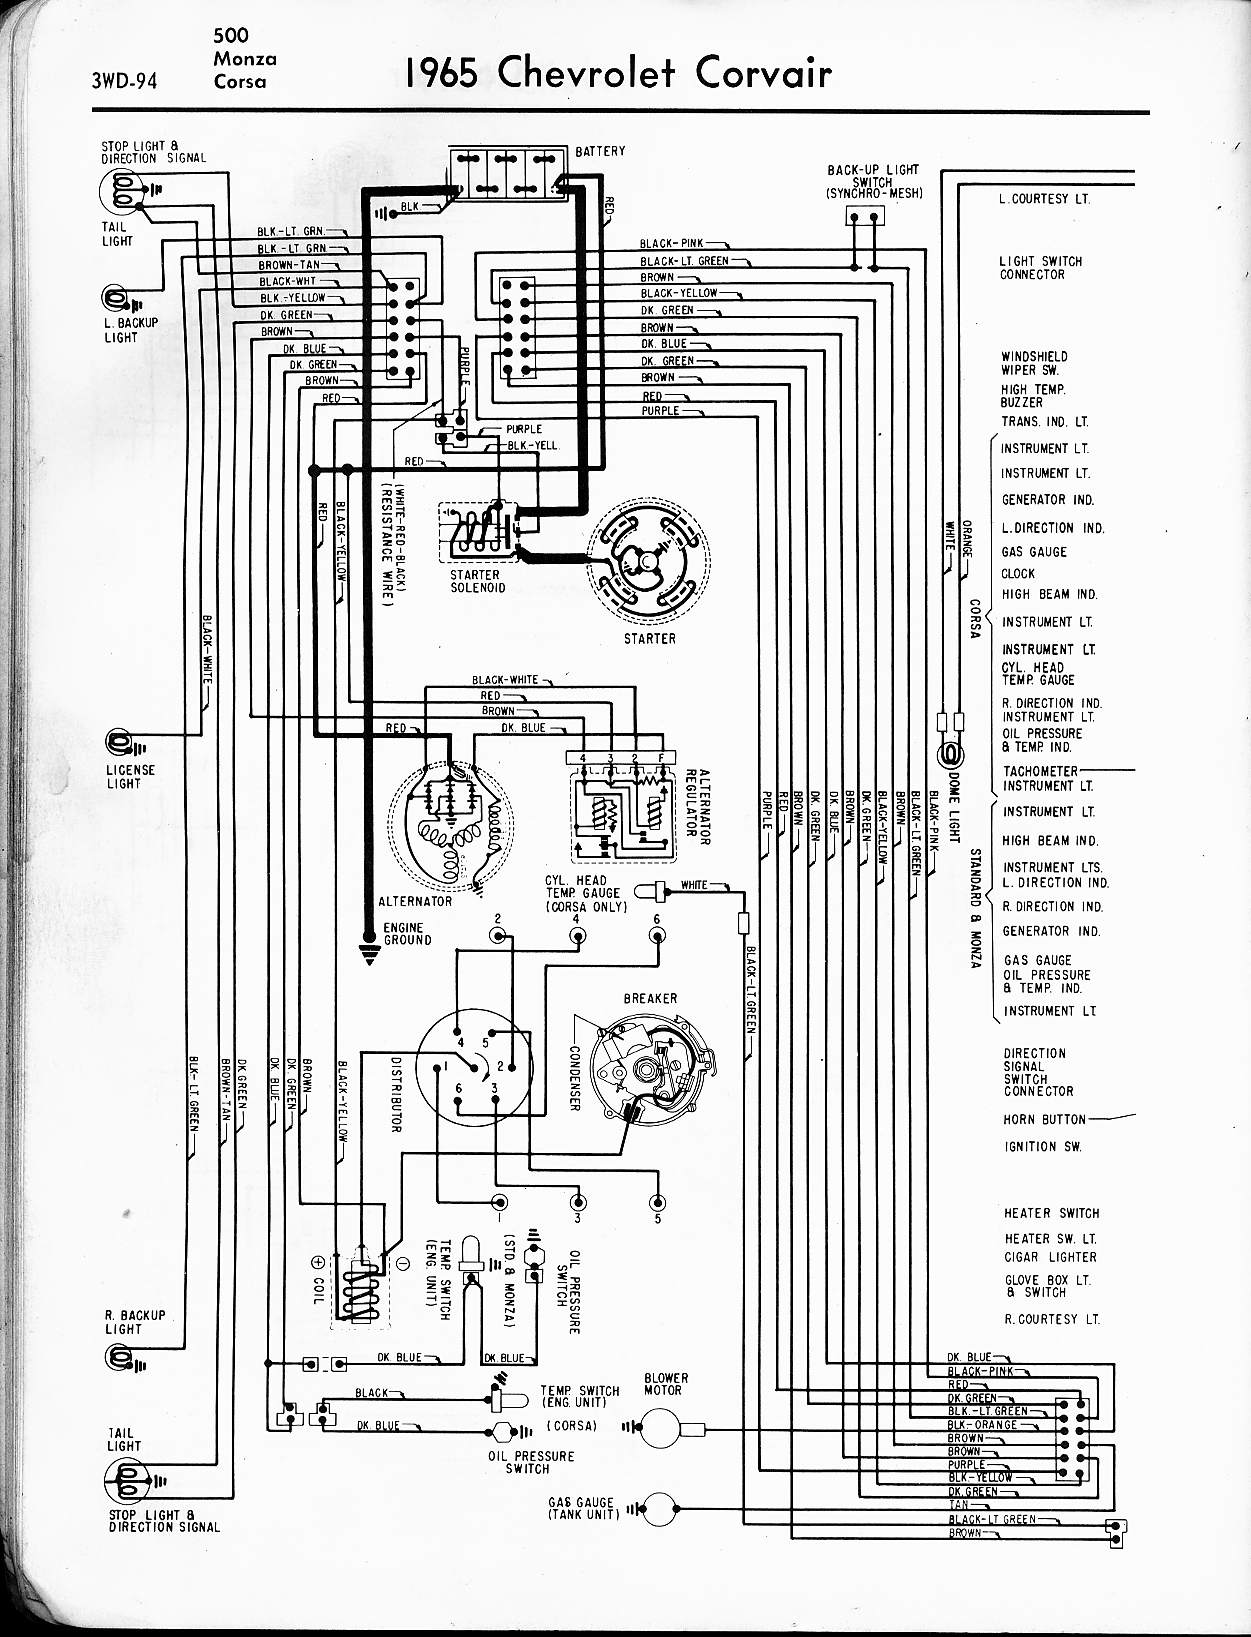 MWireChev64_3WD 094 57 65 chevy wiring diagrams 1965 corvair wiring diagram at soozxer.org